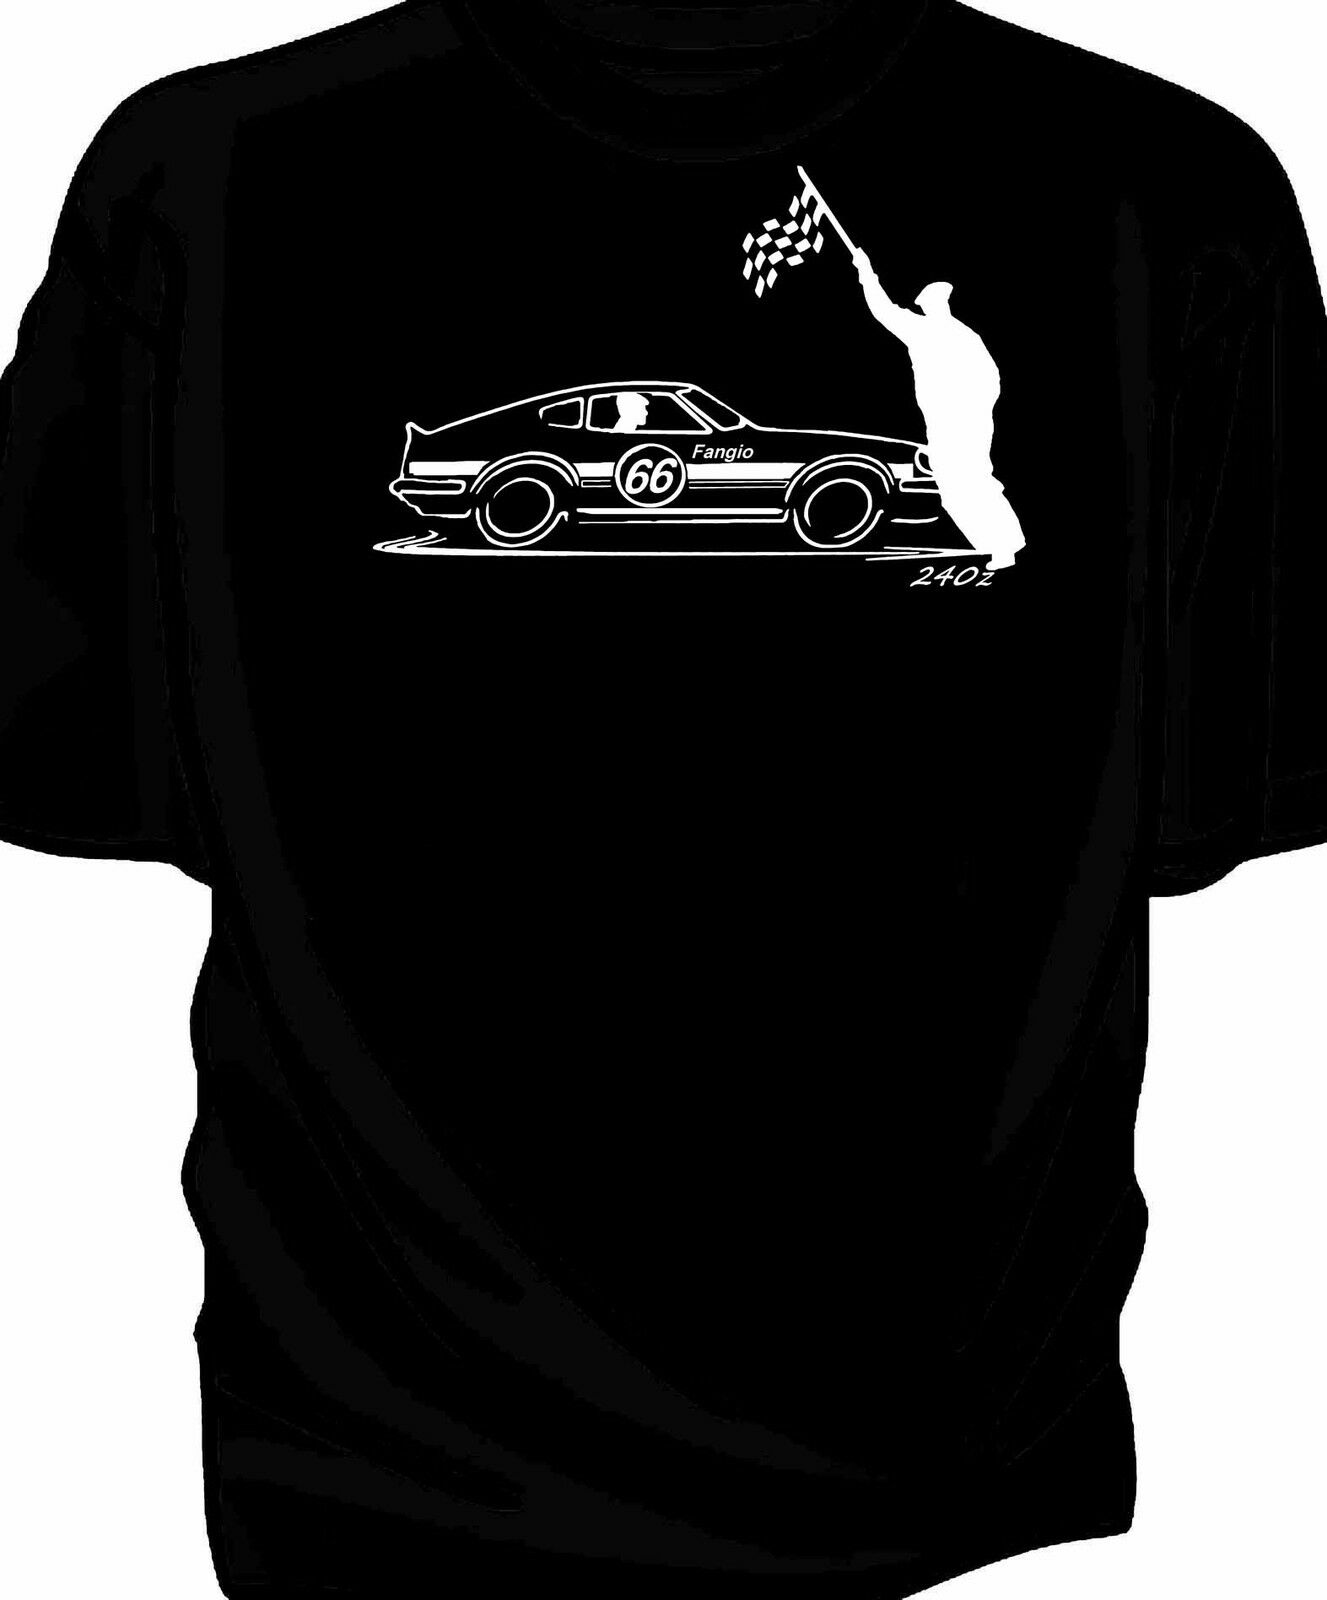 Personalised Original Sketch Chequered Flag T-Shirt Classic Race Datsun <font><b>240Z</b></font> image